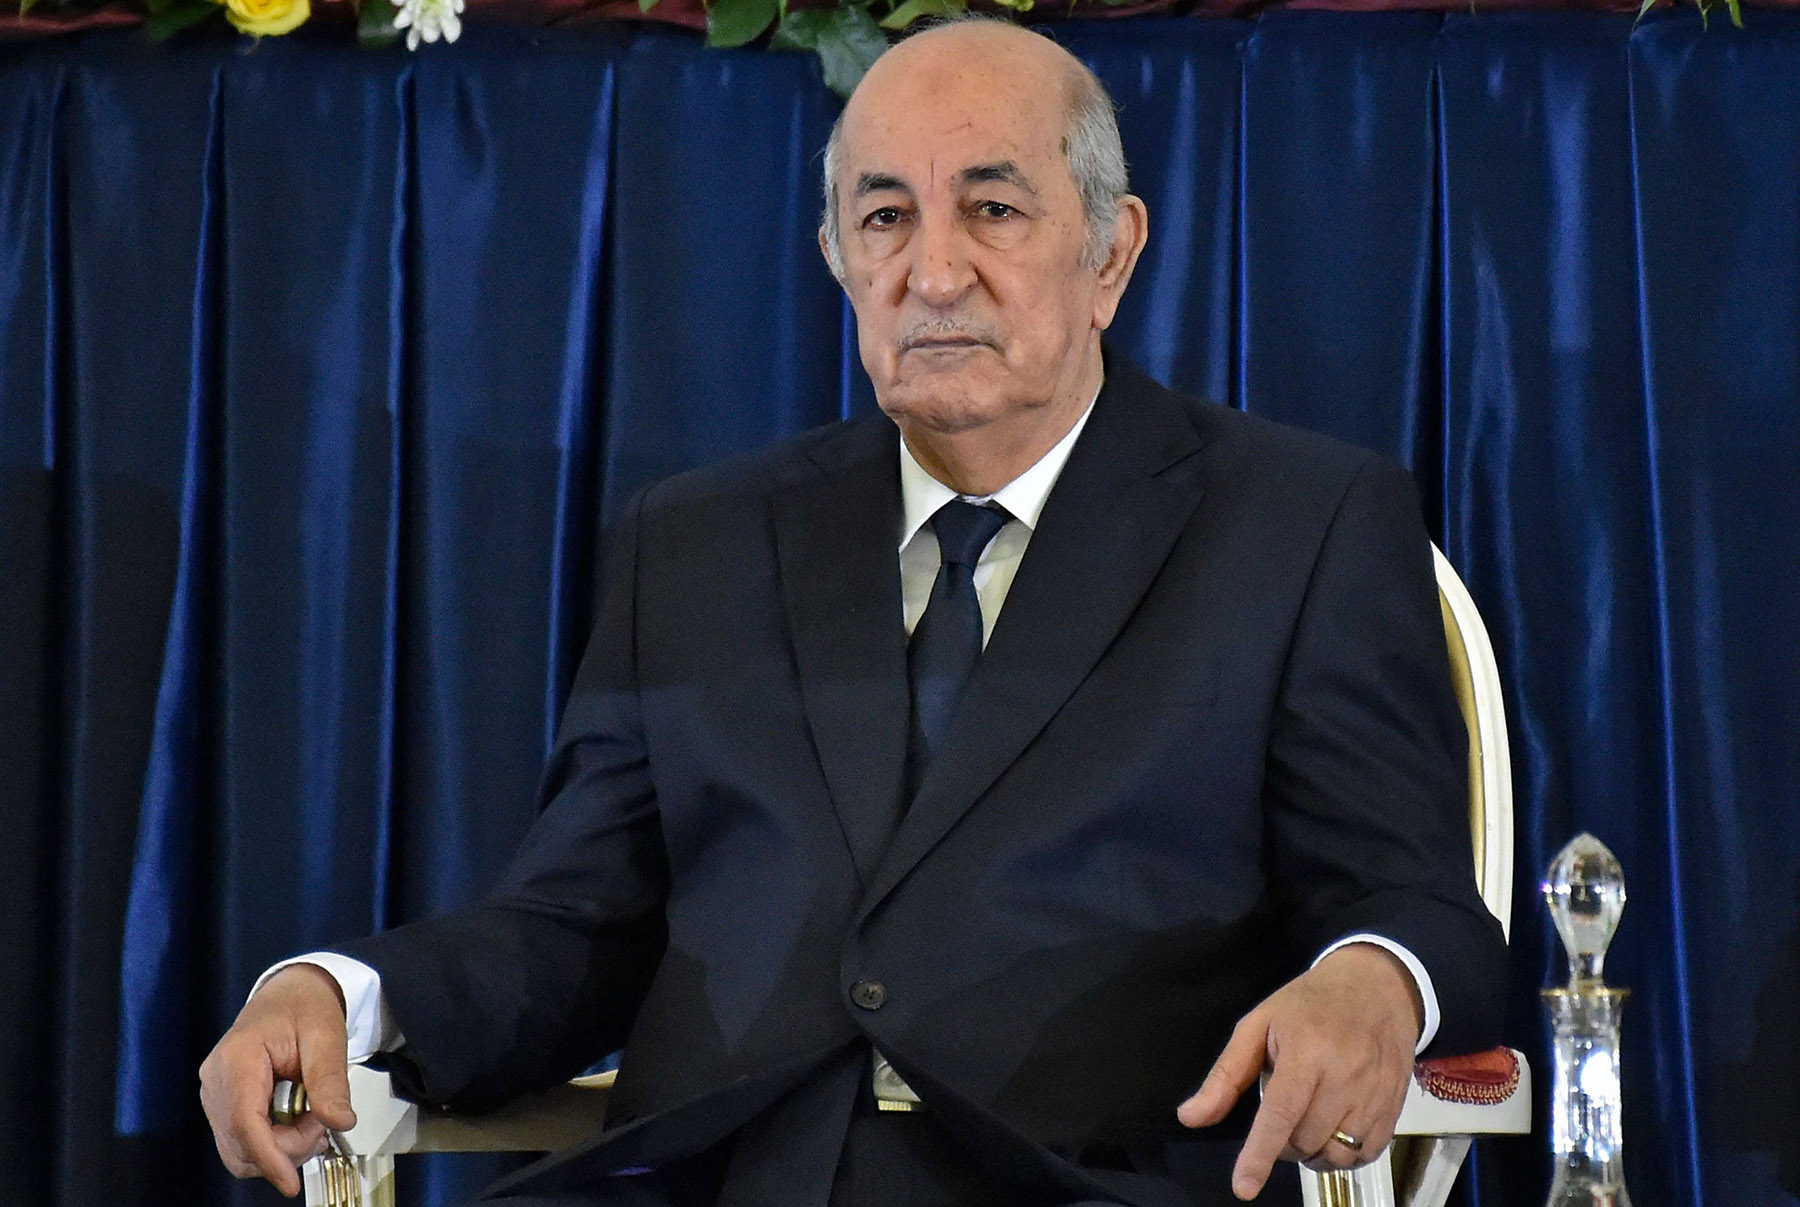 A file photo shows Algerian President-elect Abdelmajid Tebboune in the capital Algiers, on December 19, 2019. (AFP)